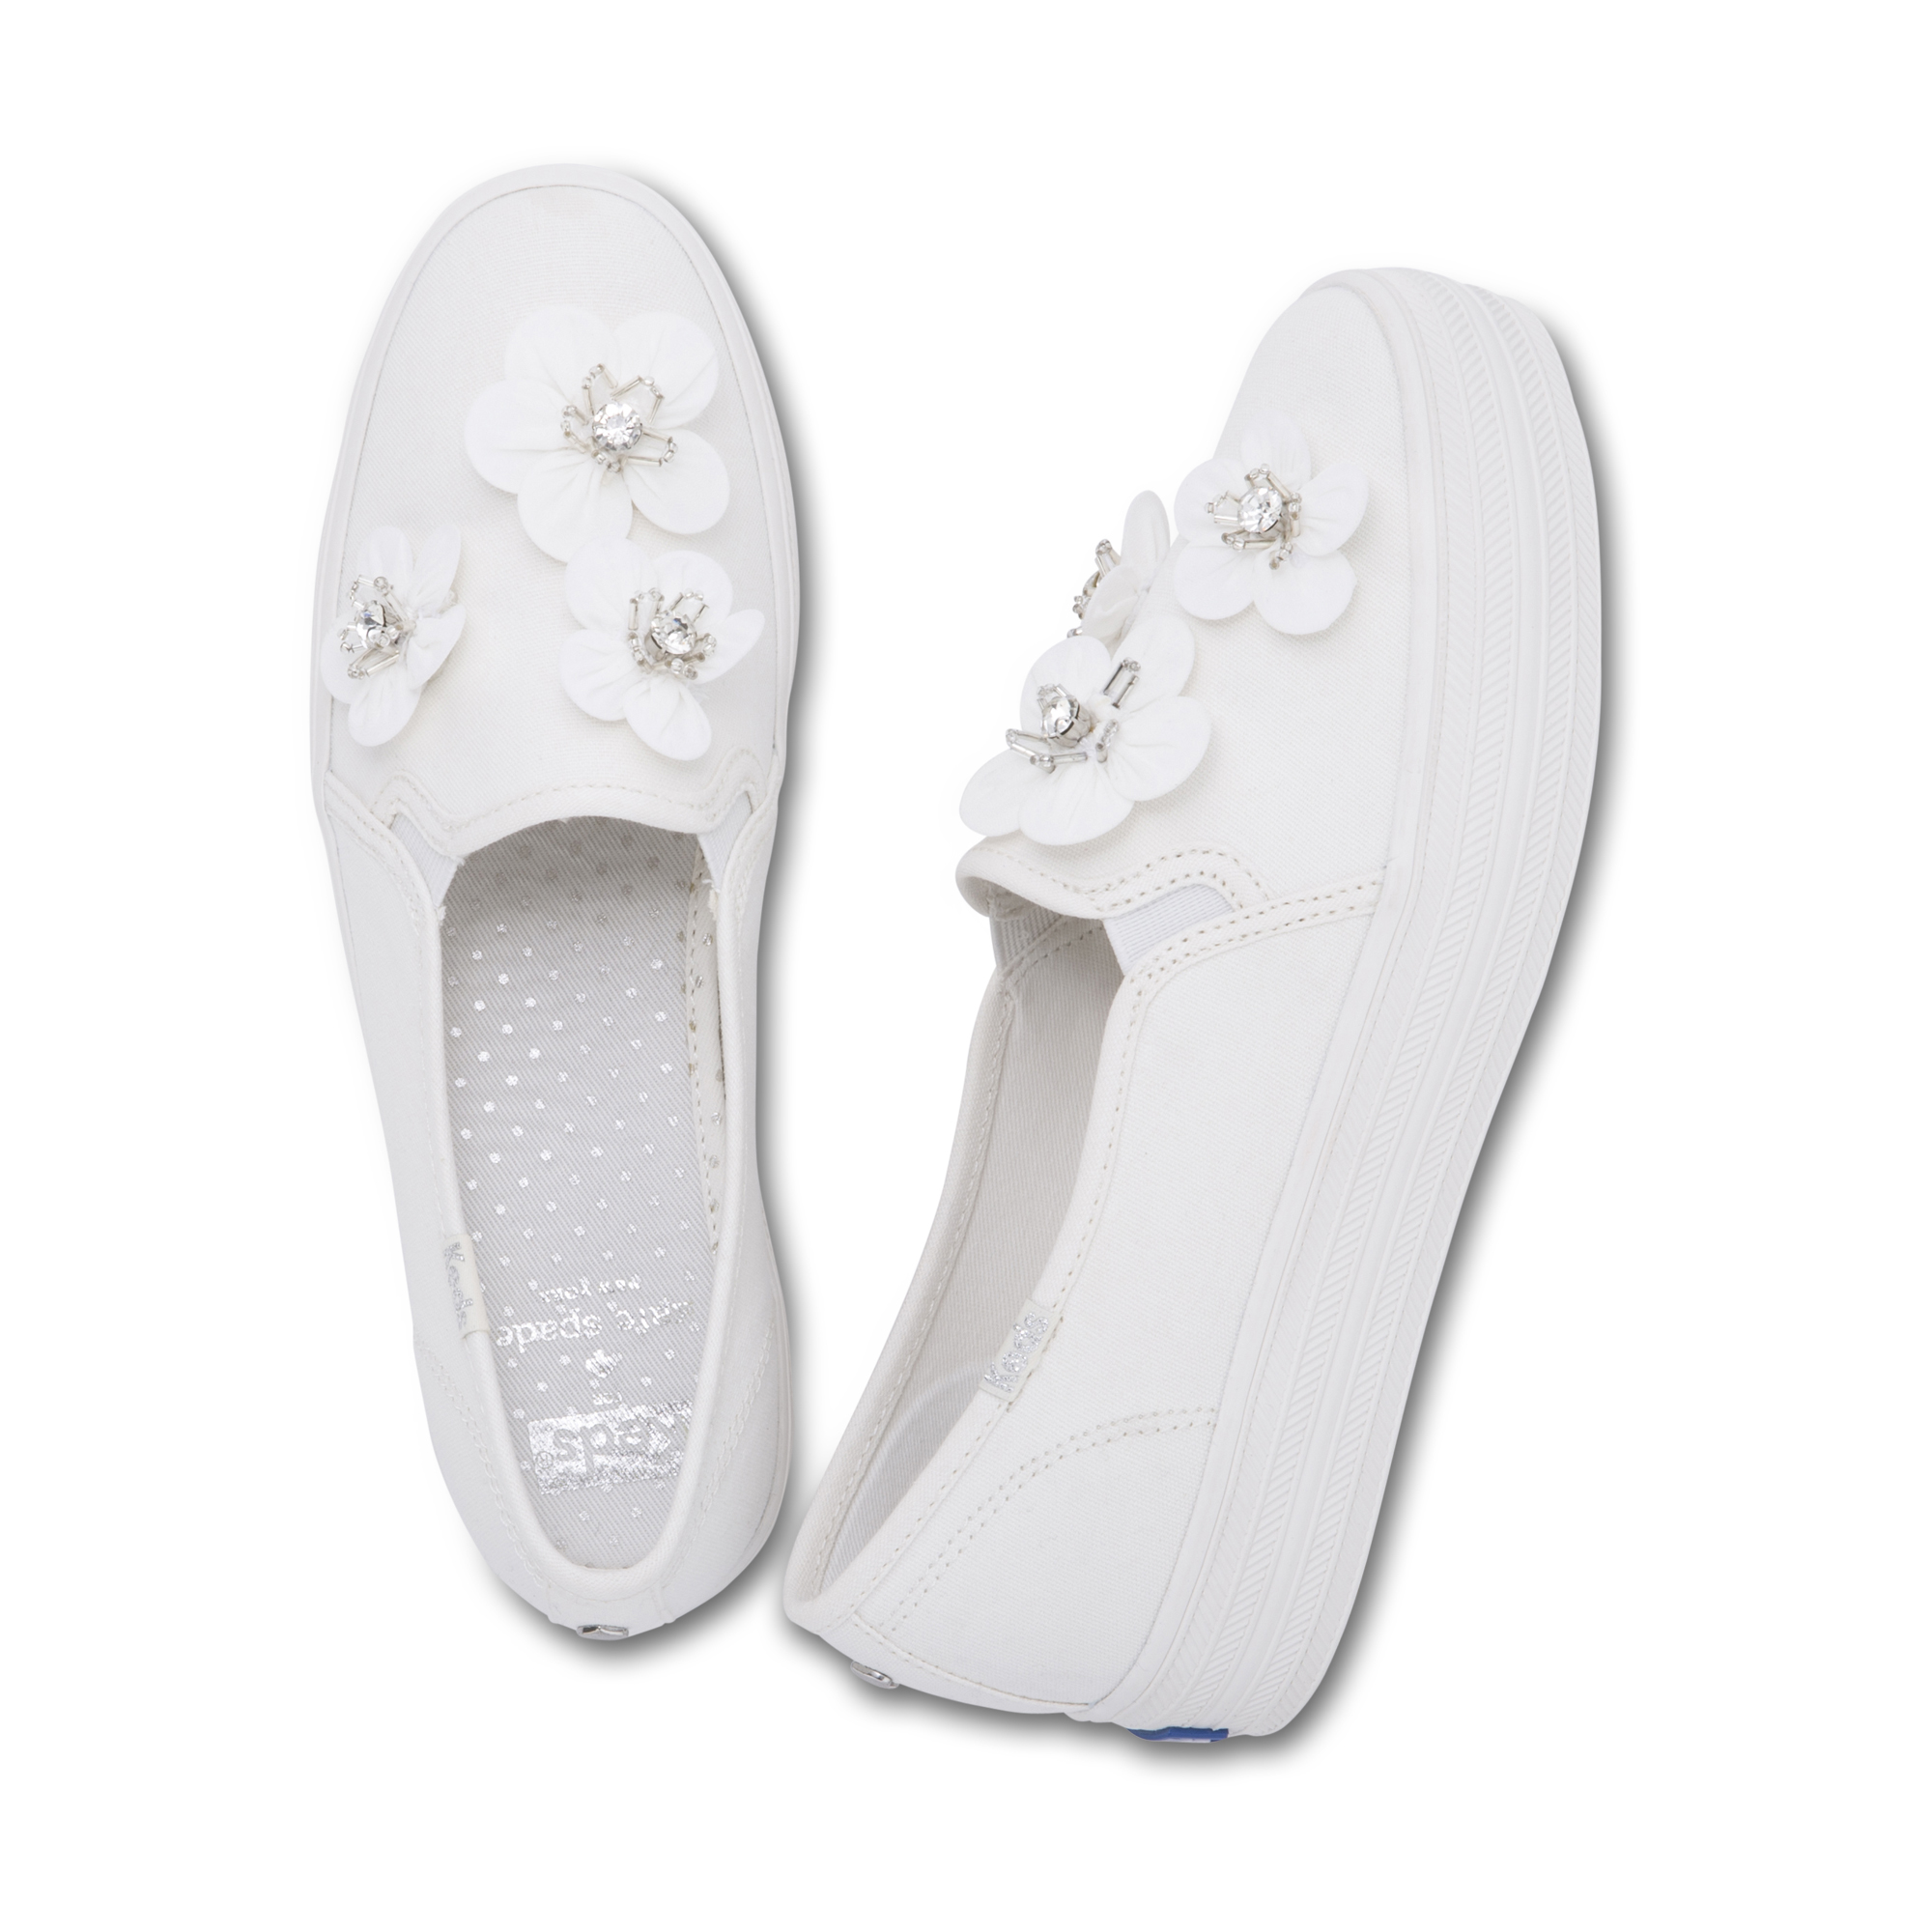 Keds And Kate Spade Just Launched A Wedding Sneaker Collection